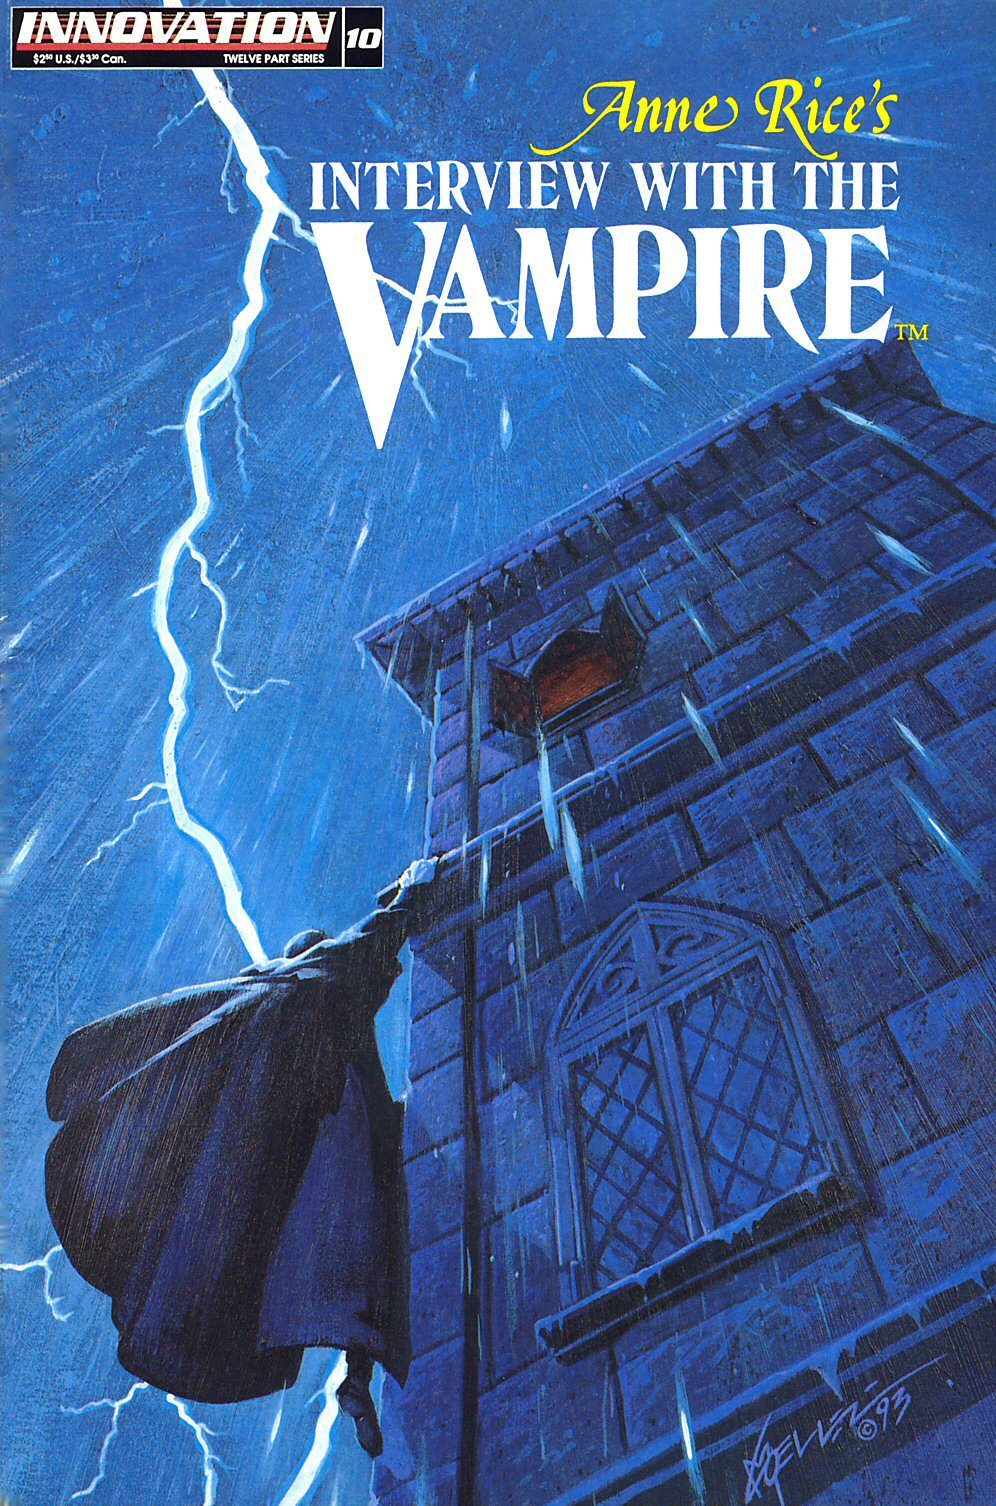 Read online Anne Rice's Interview with the Vampire comic -  Issue #10 - 1